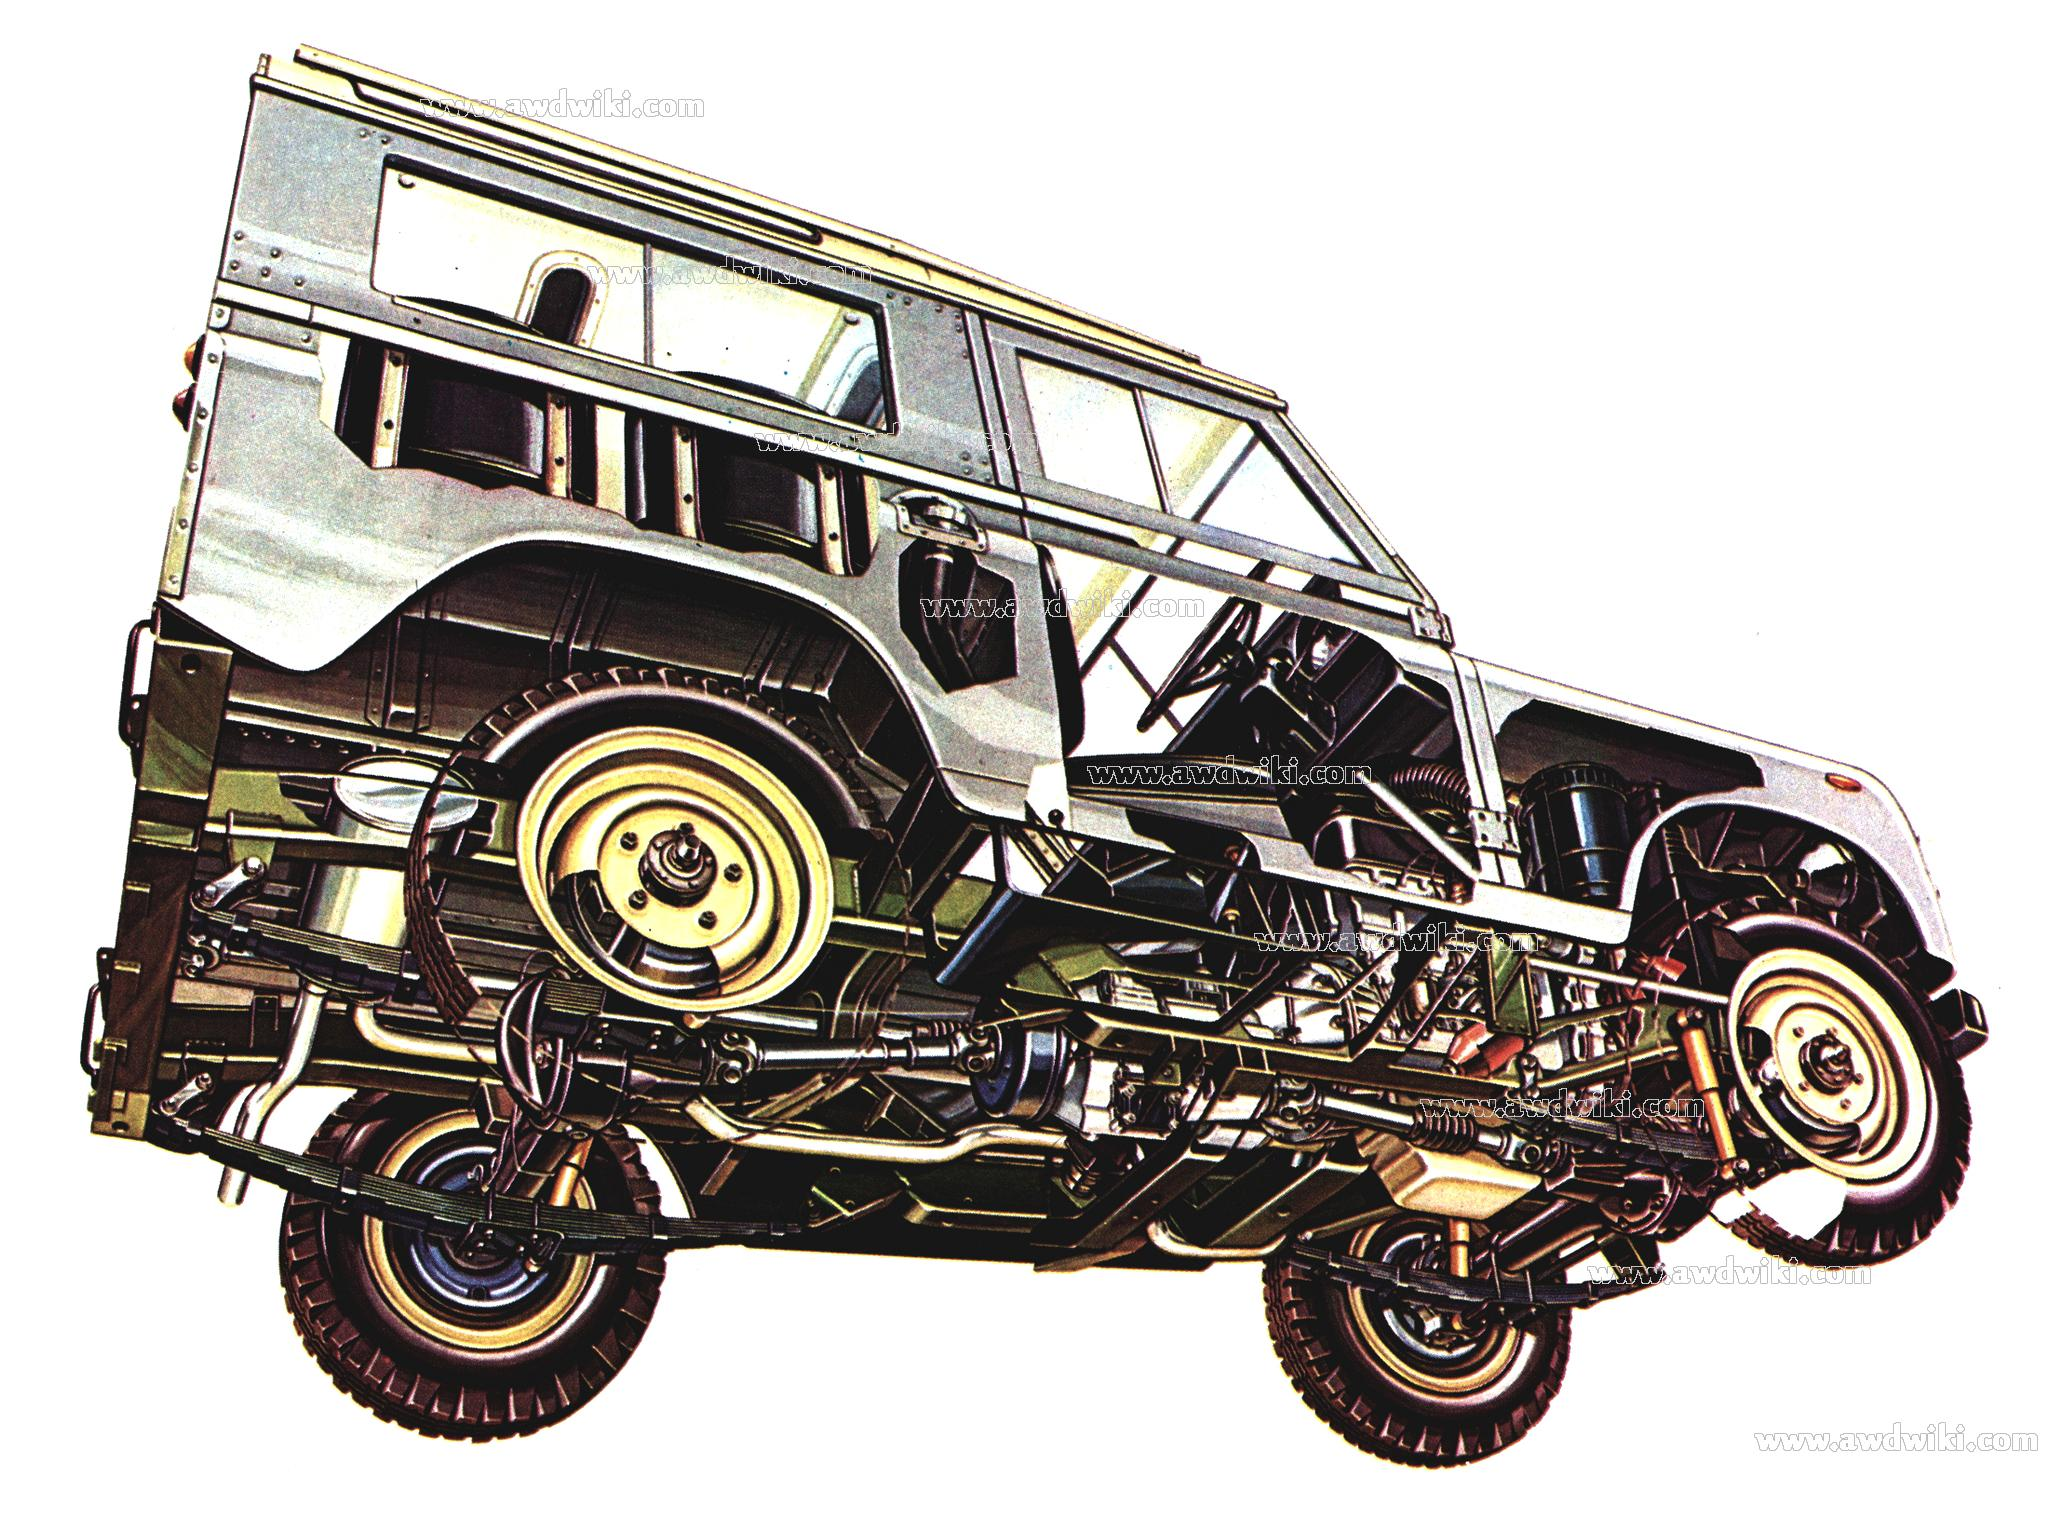 Land Rover All Wheel Drive Explained Awd Cars 4x4 Vehicles 4wd Discovery Engine Computer Diagram Series Iii